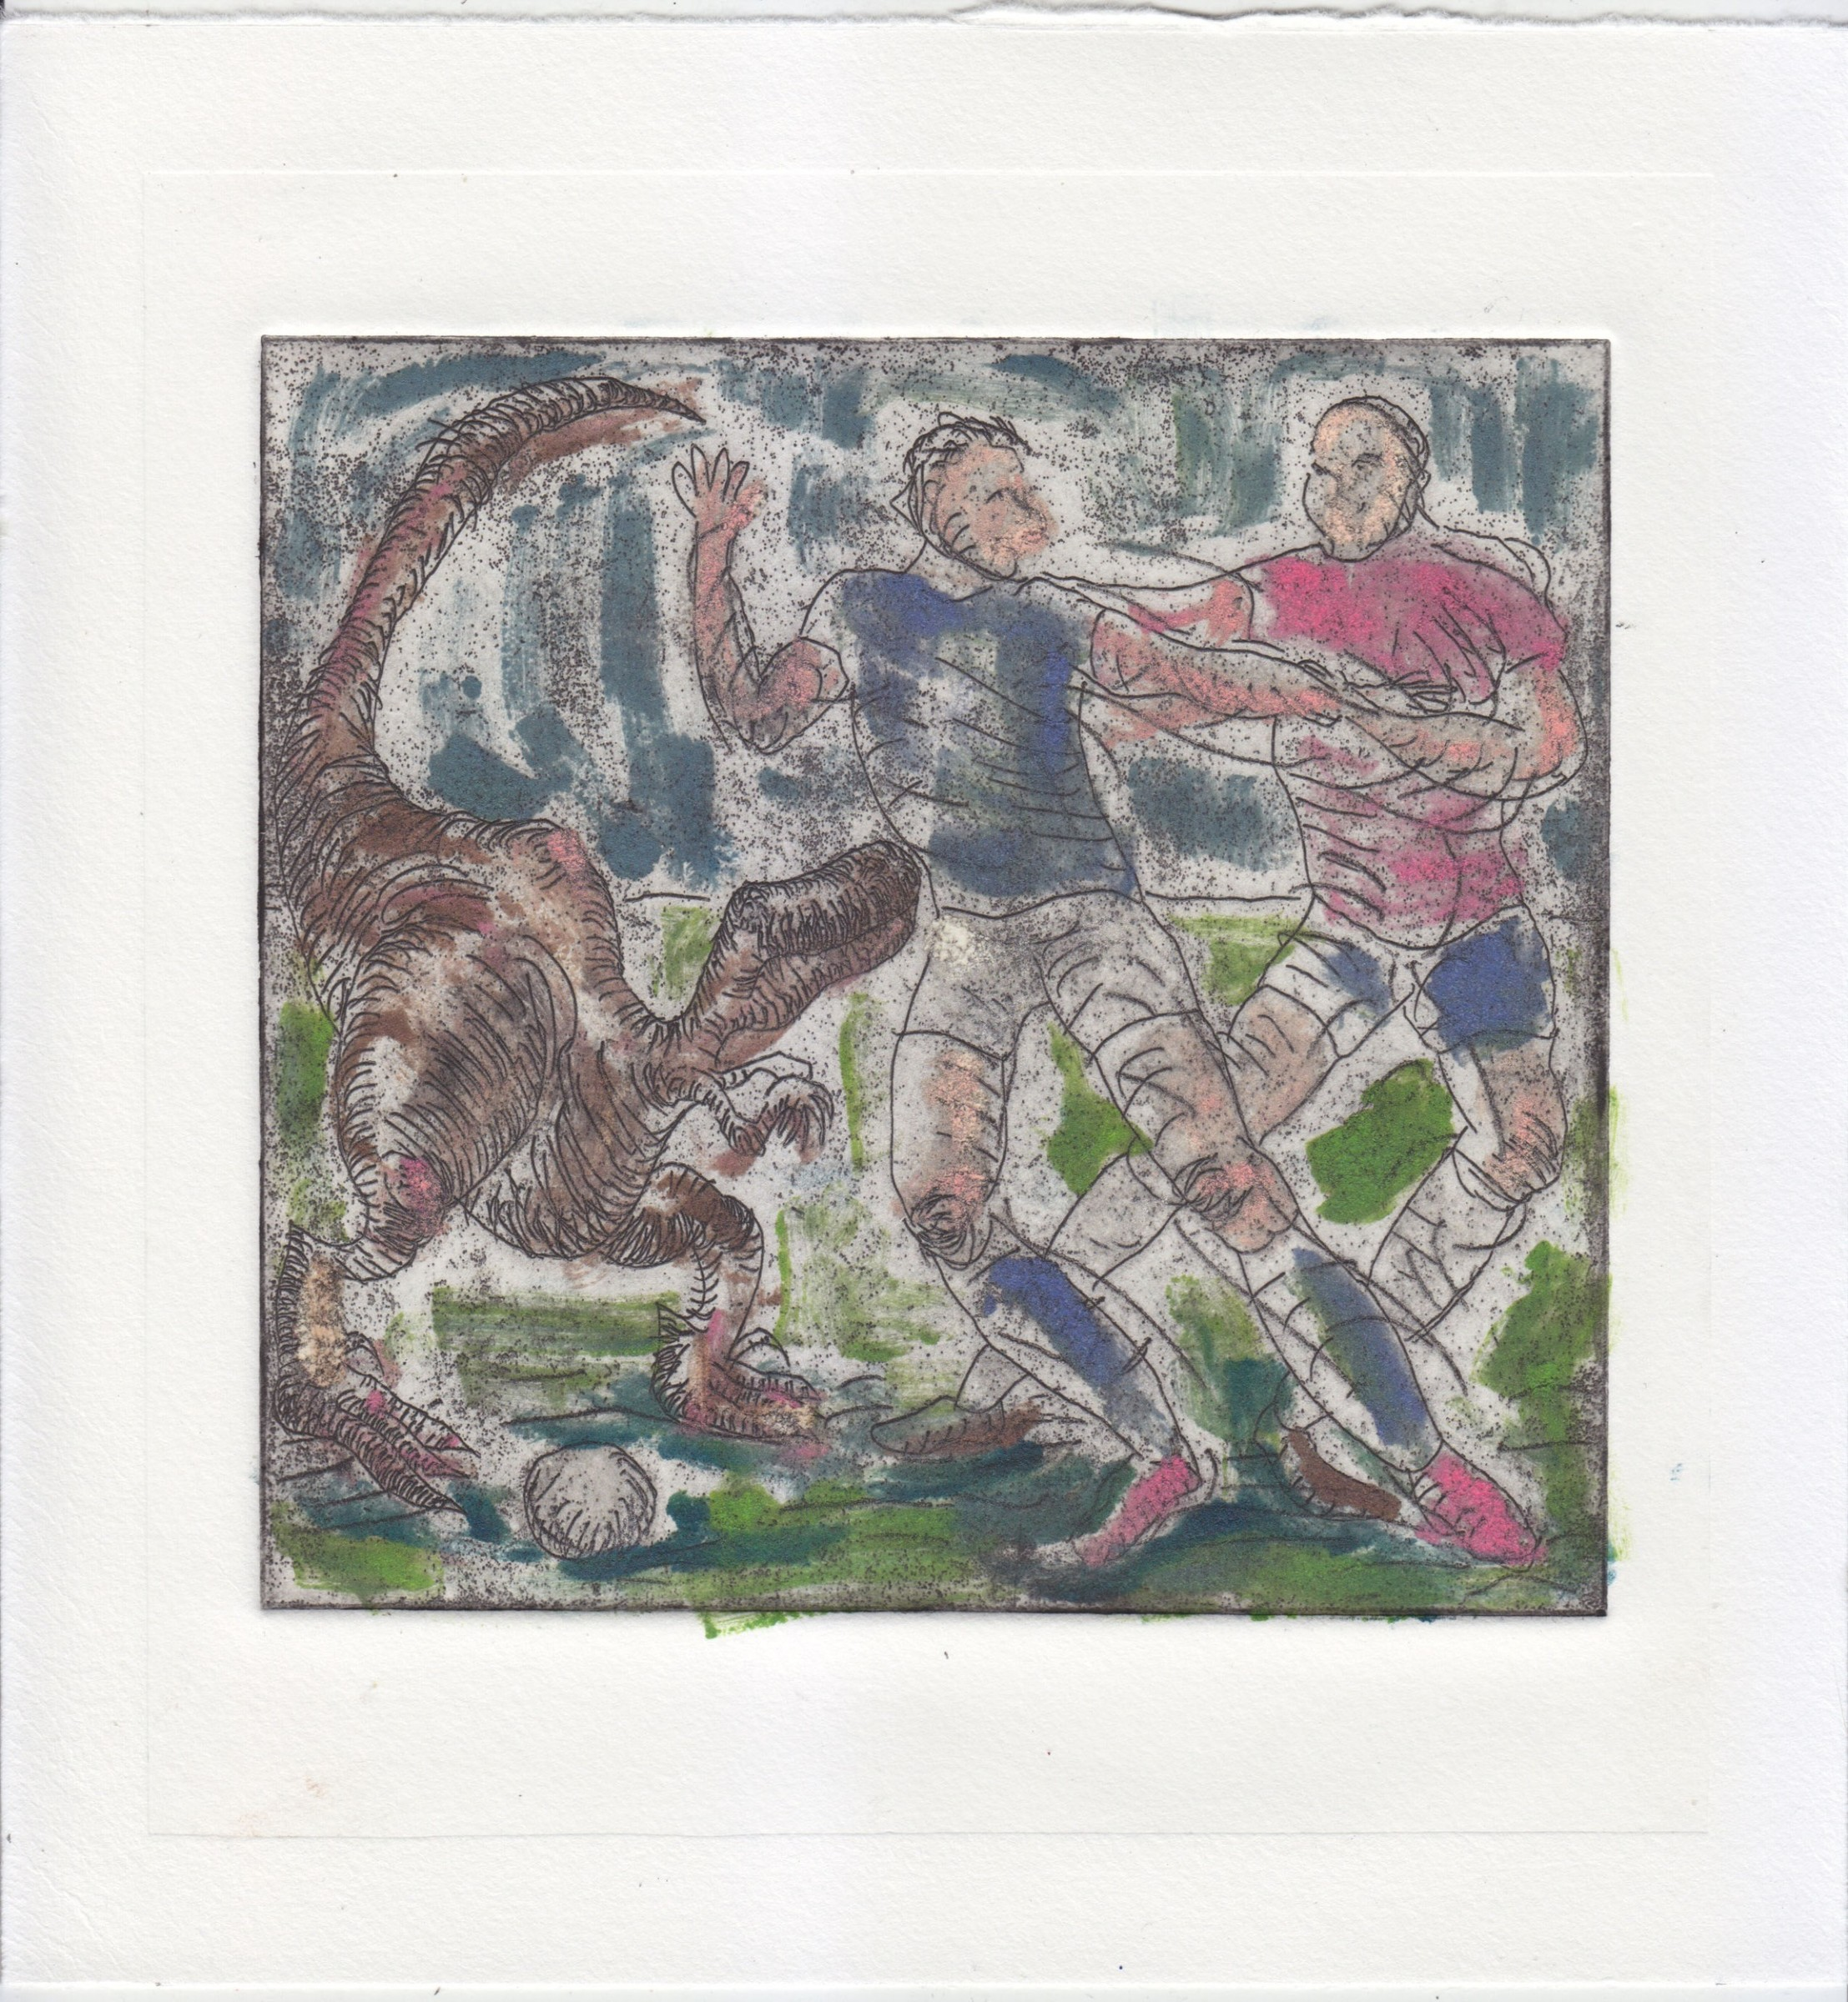 "<span class=""link fancybox-details-link""><a href=""/exhibitions/17/works/image_standalone671/"">View Detail Page</a></span><p><strong>Alex Chilvers</strong></p><p>Pulled Back</p><p>etching and monoprint, 1/1</p><p>22 x 23cm</p><p>£320 framed</p><p>£250 unframed</p>"